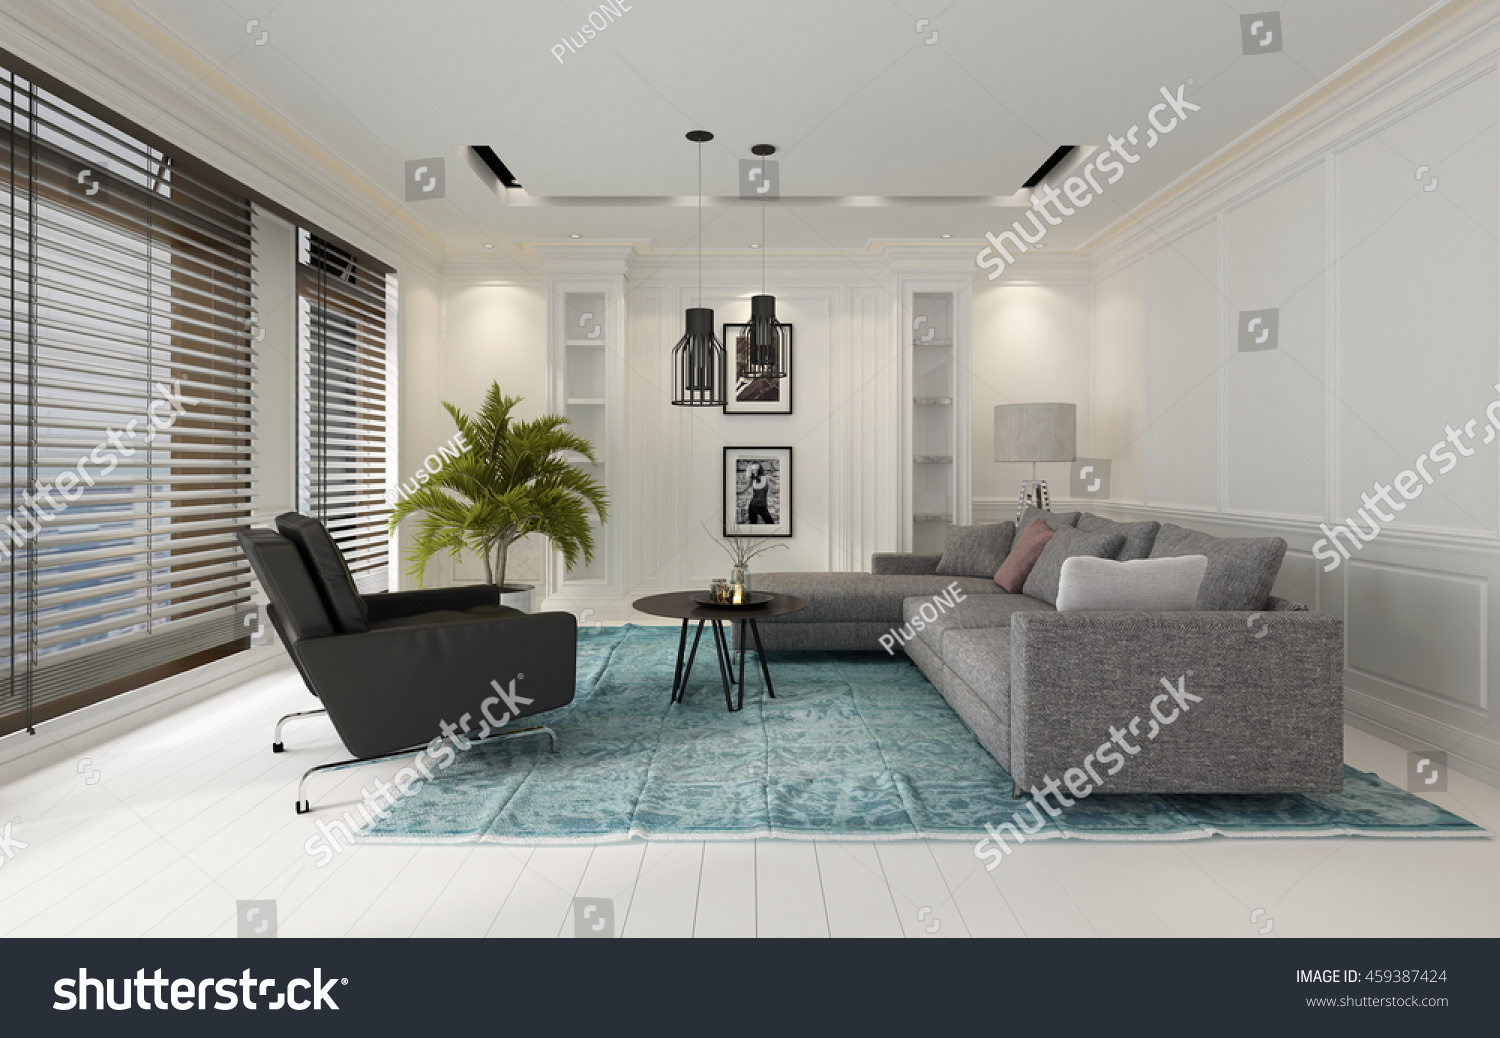 Comfortable modern white living room interior stock illustration 459387424 shutterstock - Comfy interiors ...